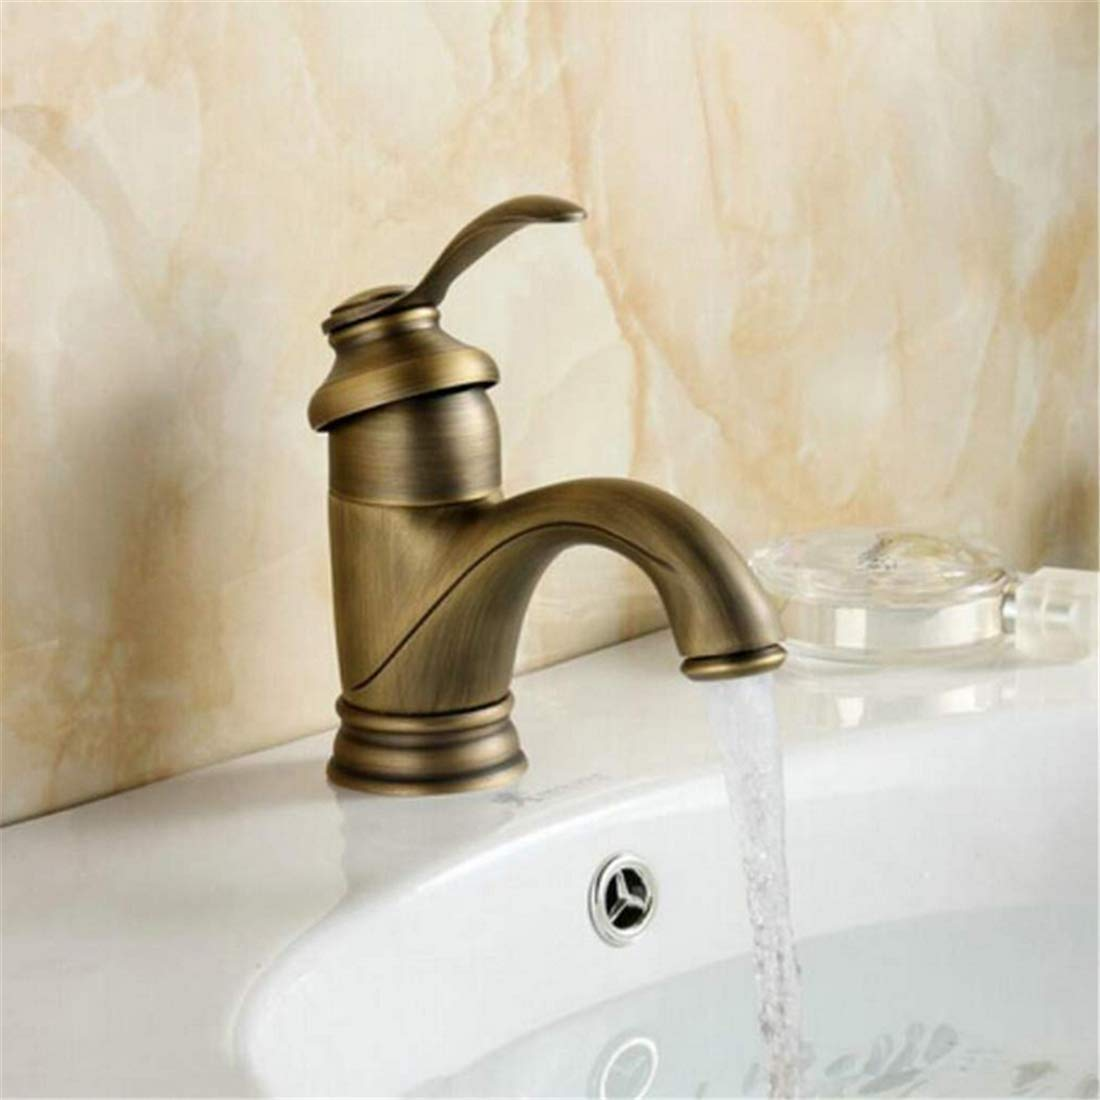 Faucets Basin Mixerbasin Chrome Brass Waterfall Sink Faucets